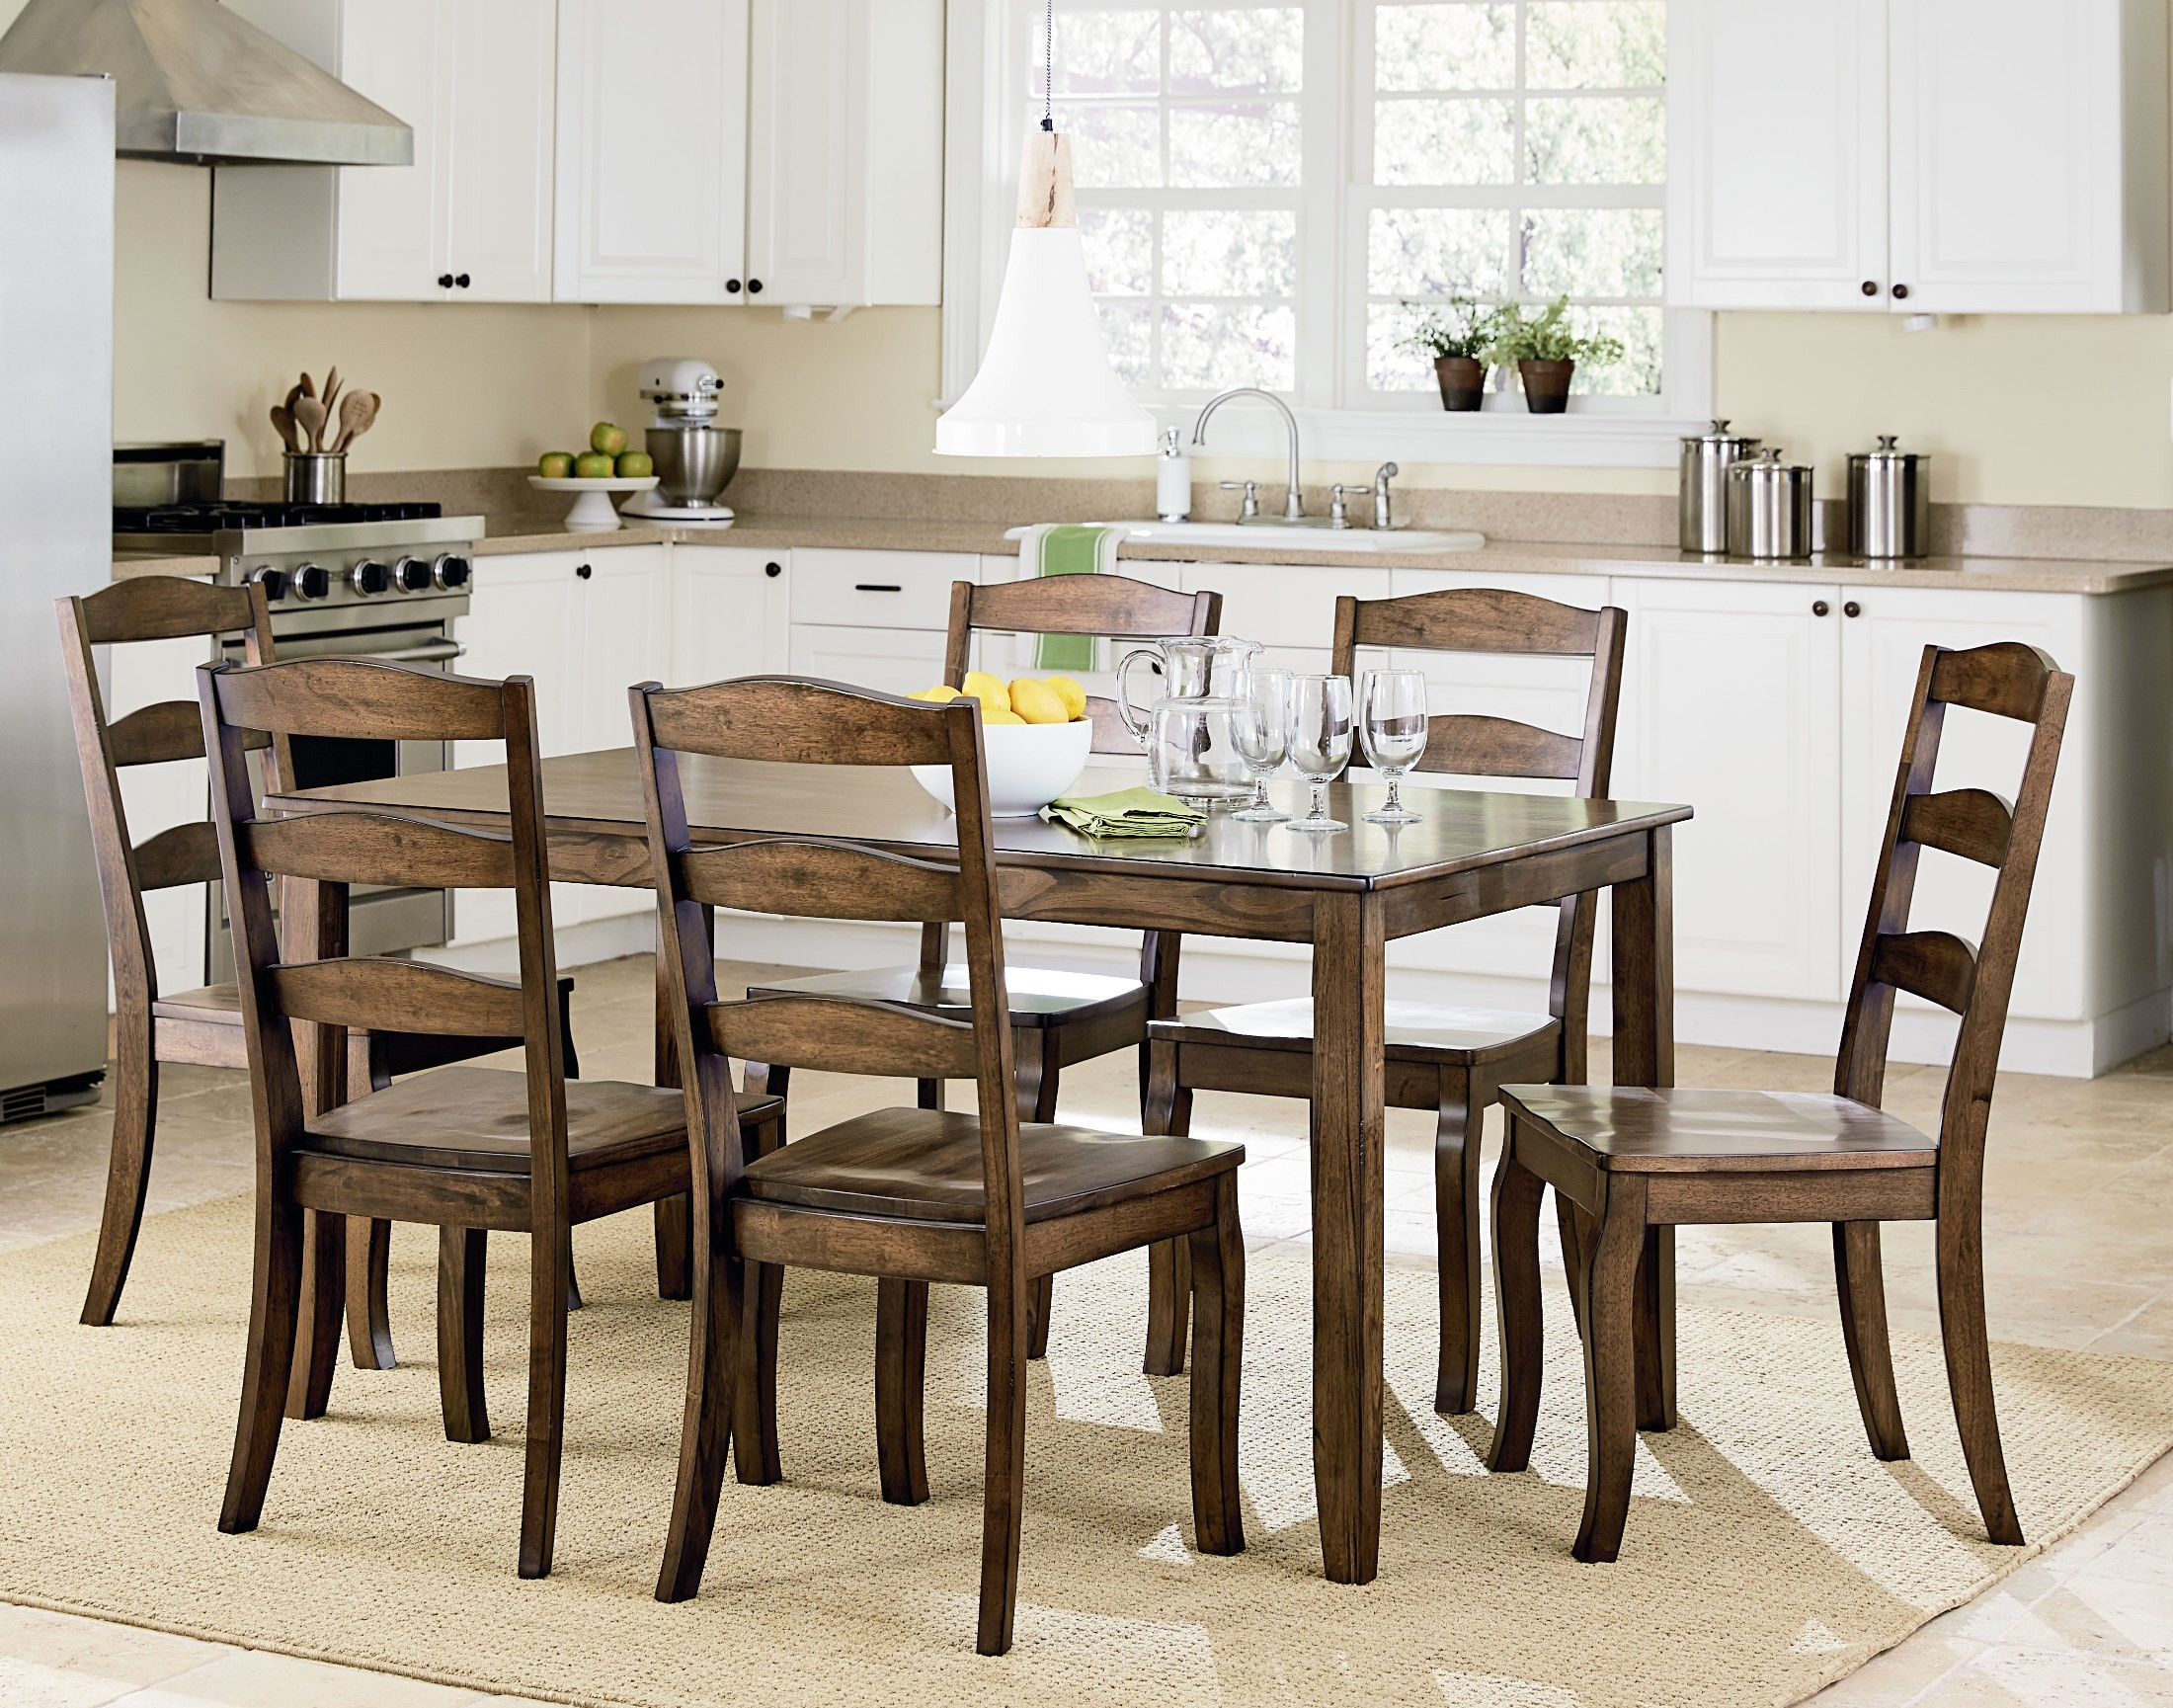 Highland brown 7 piece dining room set 16562 standard for 7 piece dining room set